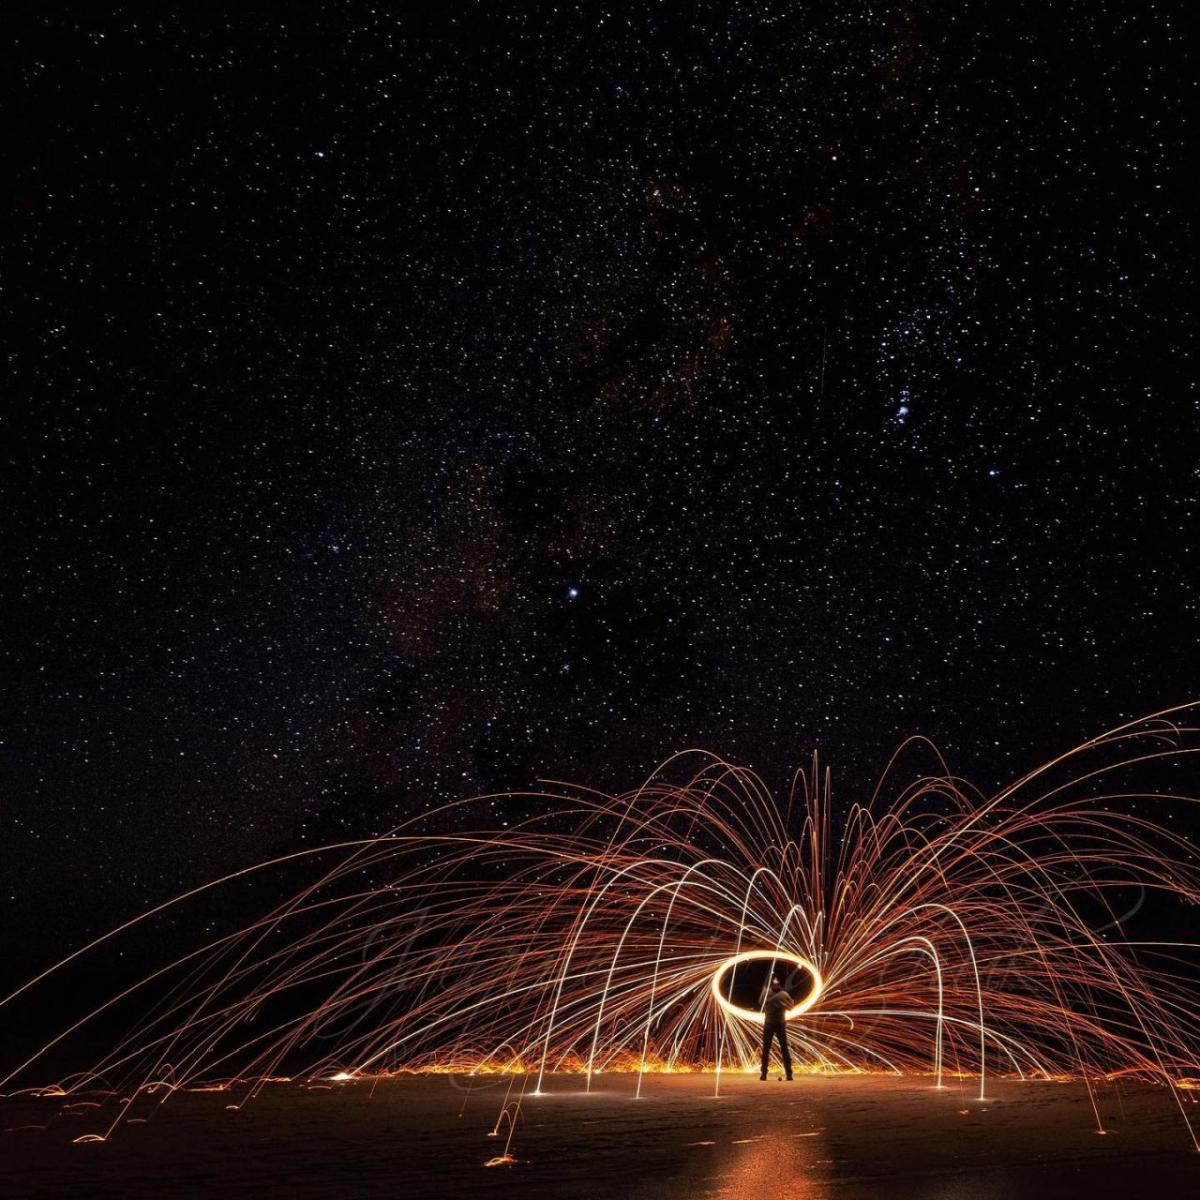 night photography by jacquie matechuk